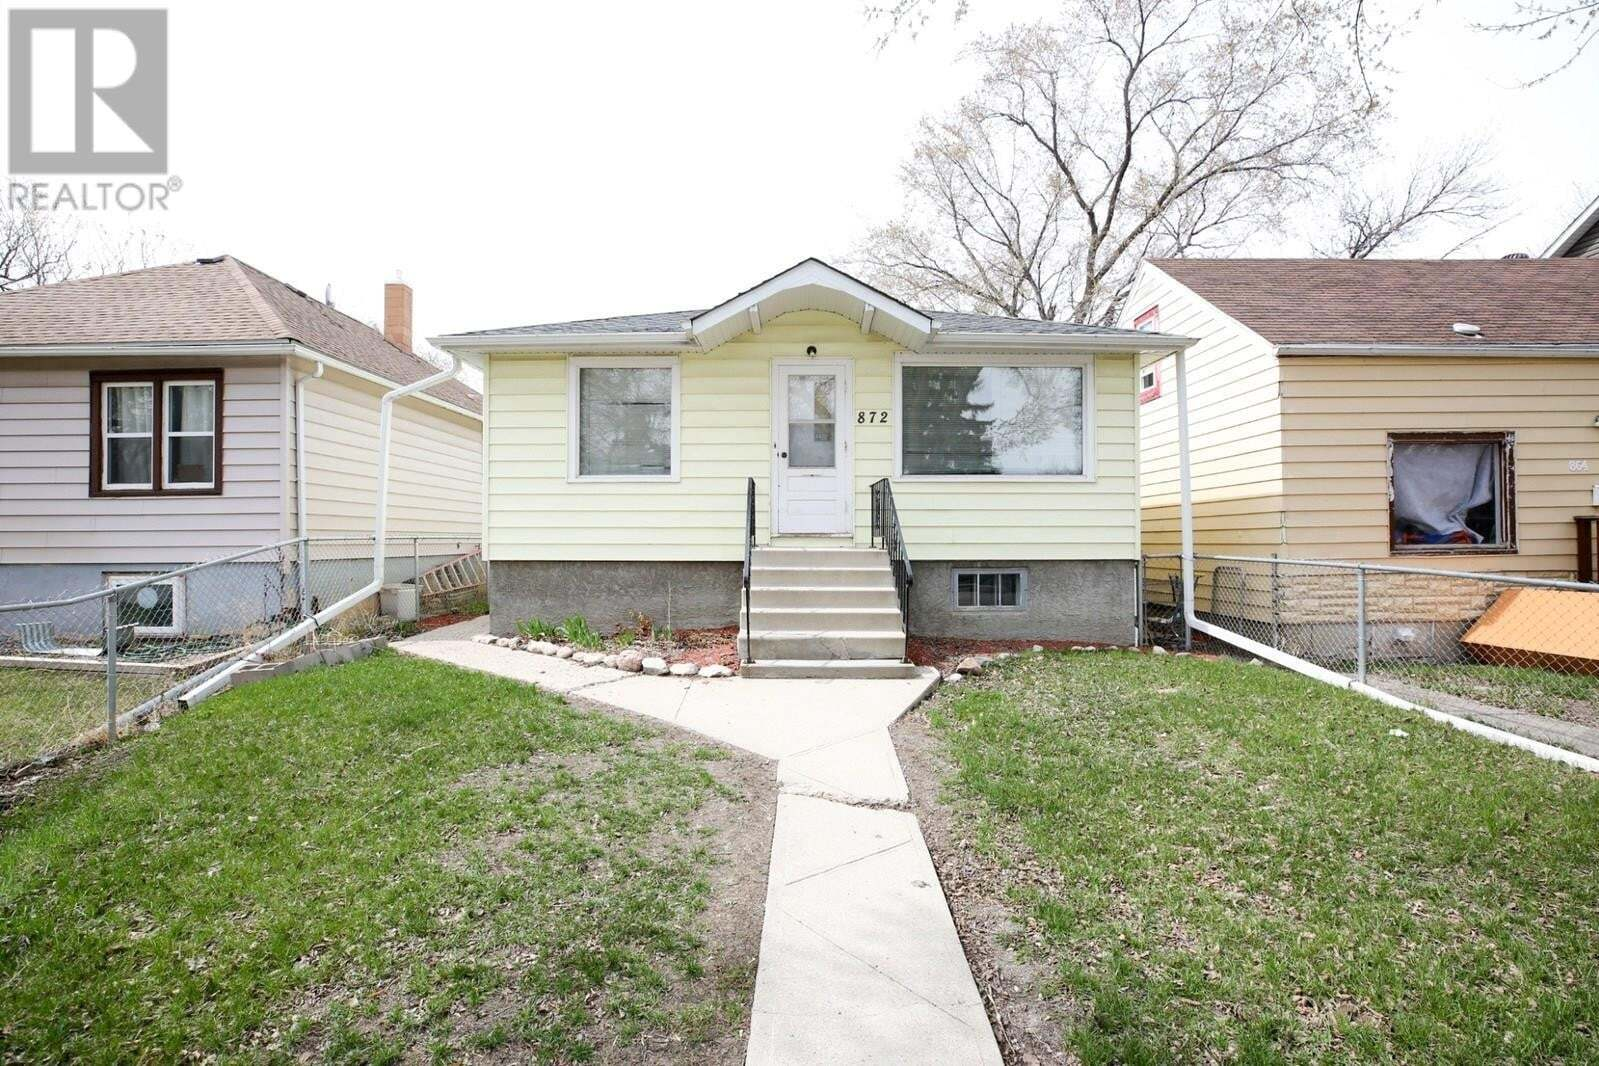 House for sale at 872 Argyle St Regina Saskatchewan - MLS: SK819417